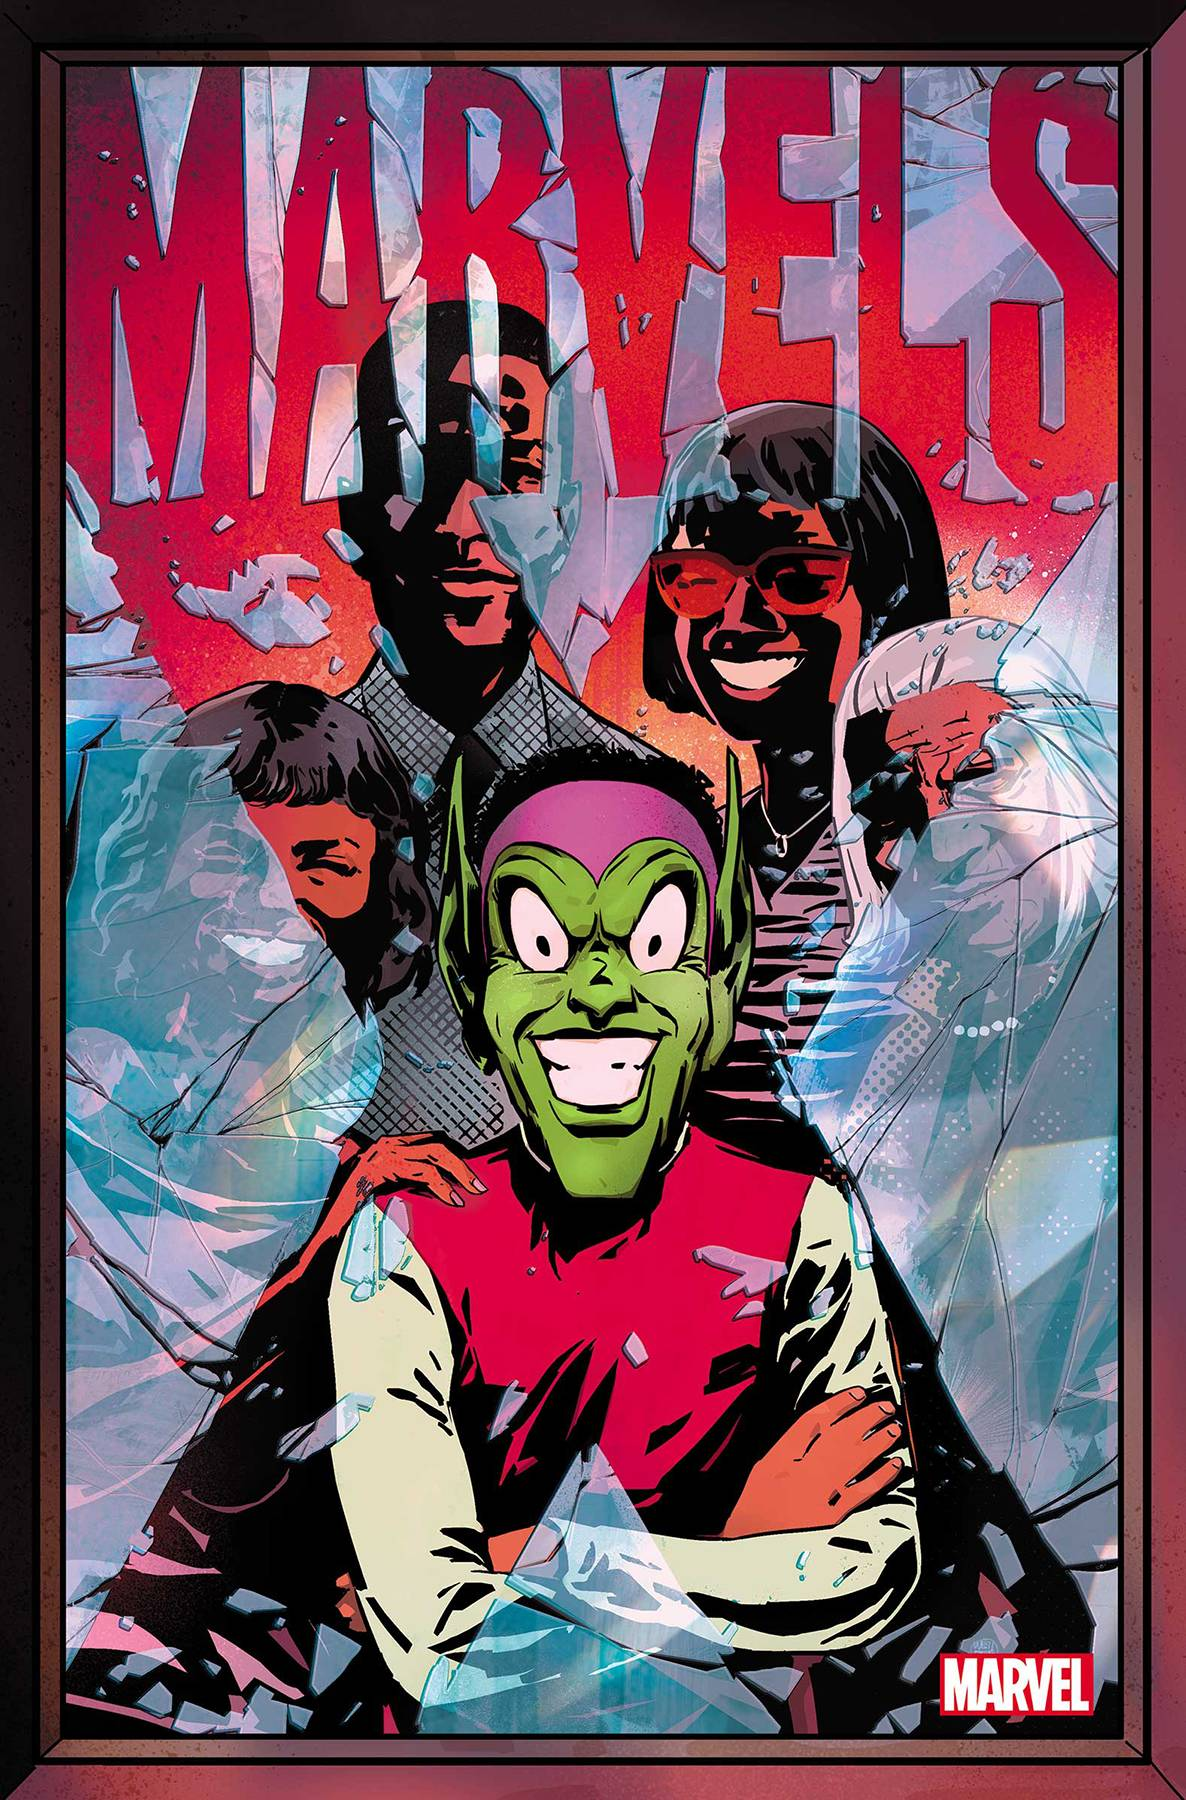 MARVELS X #1 (OF 6) WELL BE VAR